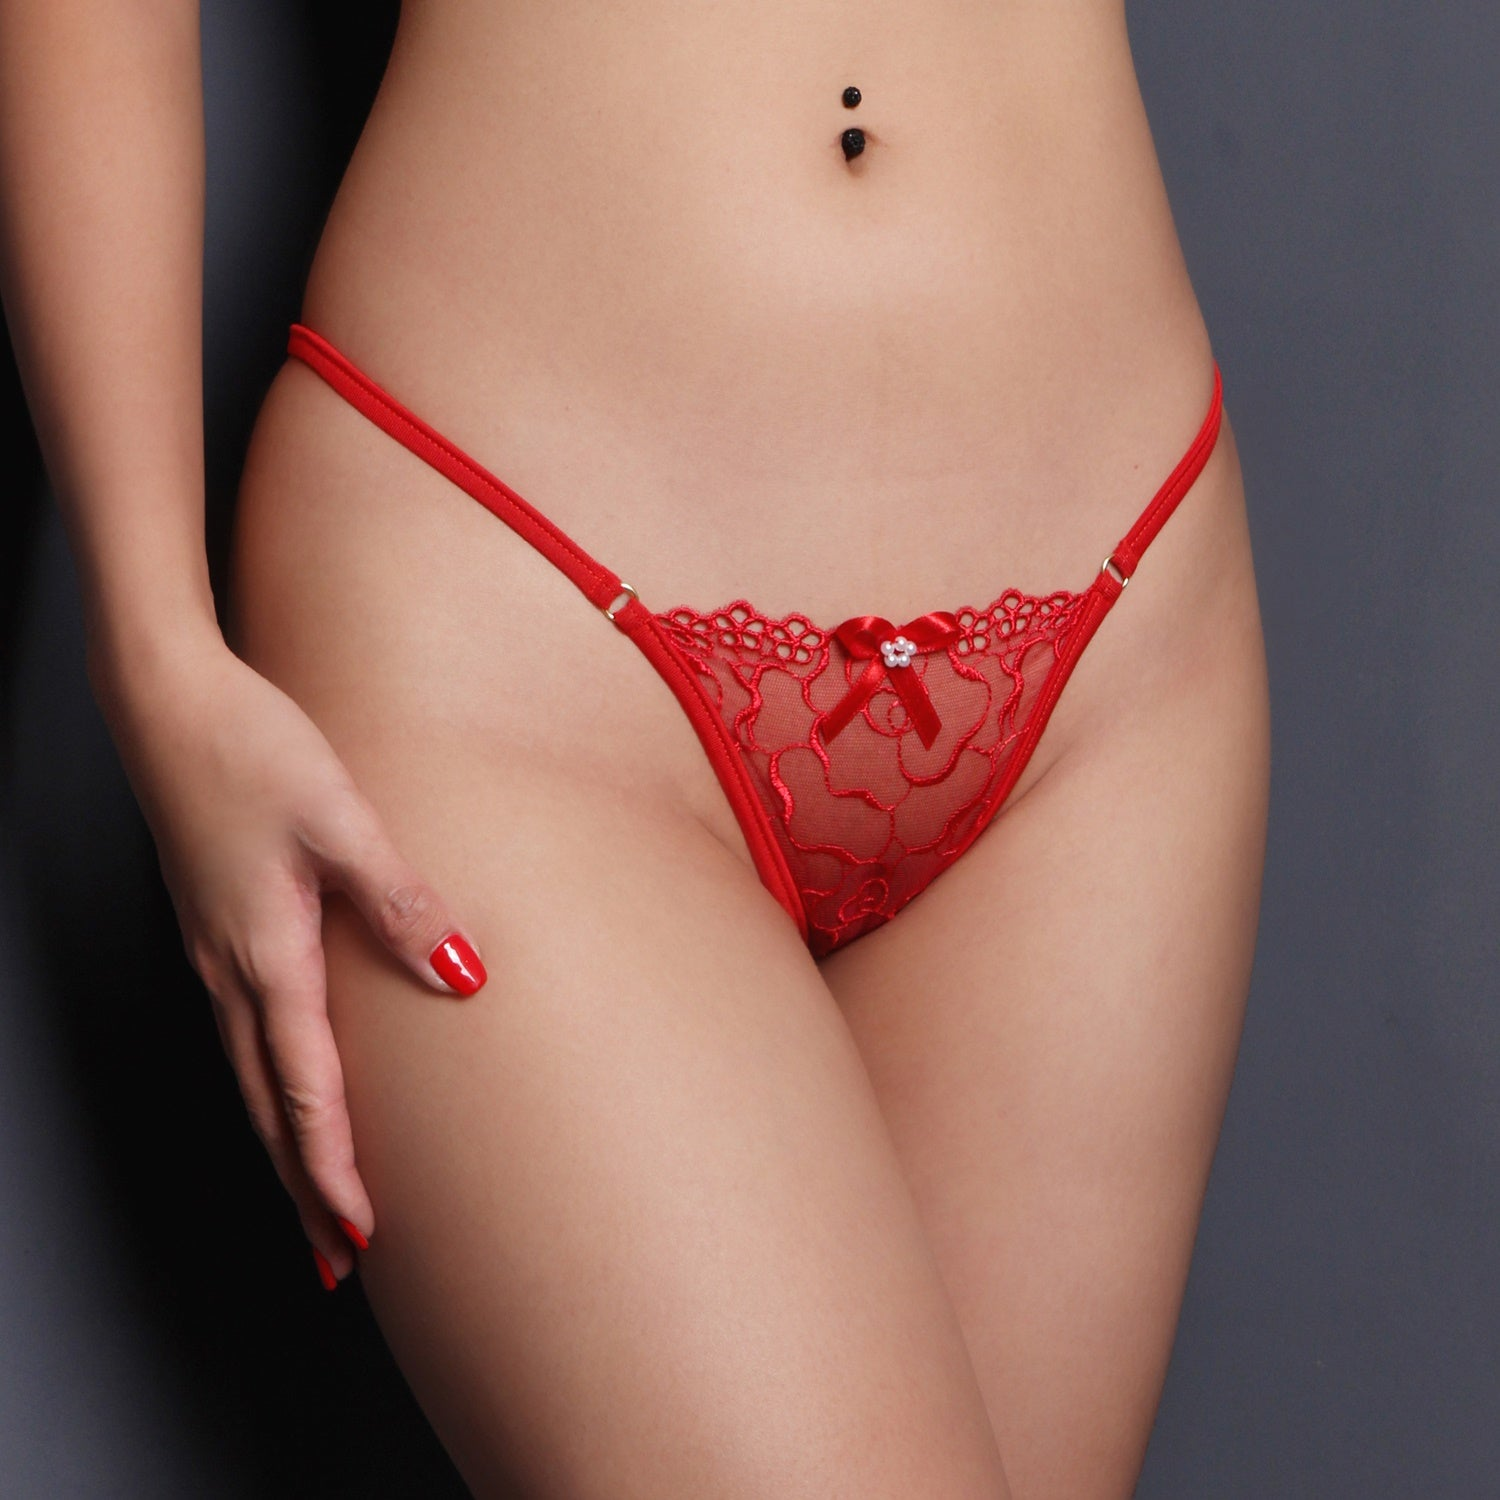 Sheer lingerie Red Lace G string Erotic Bridal lingerie Sexy See through pantie